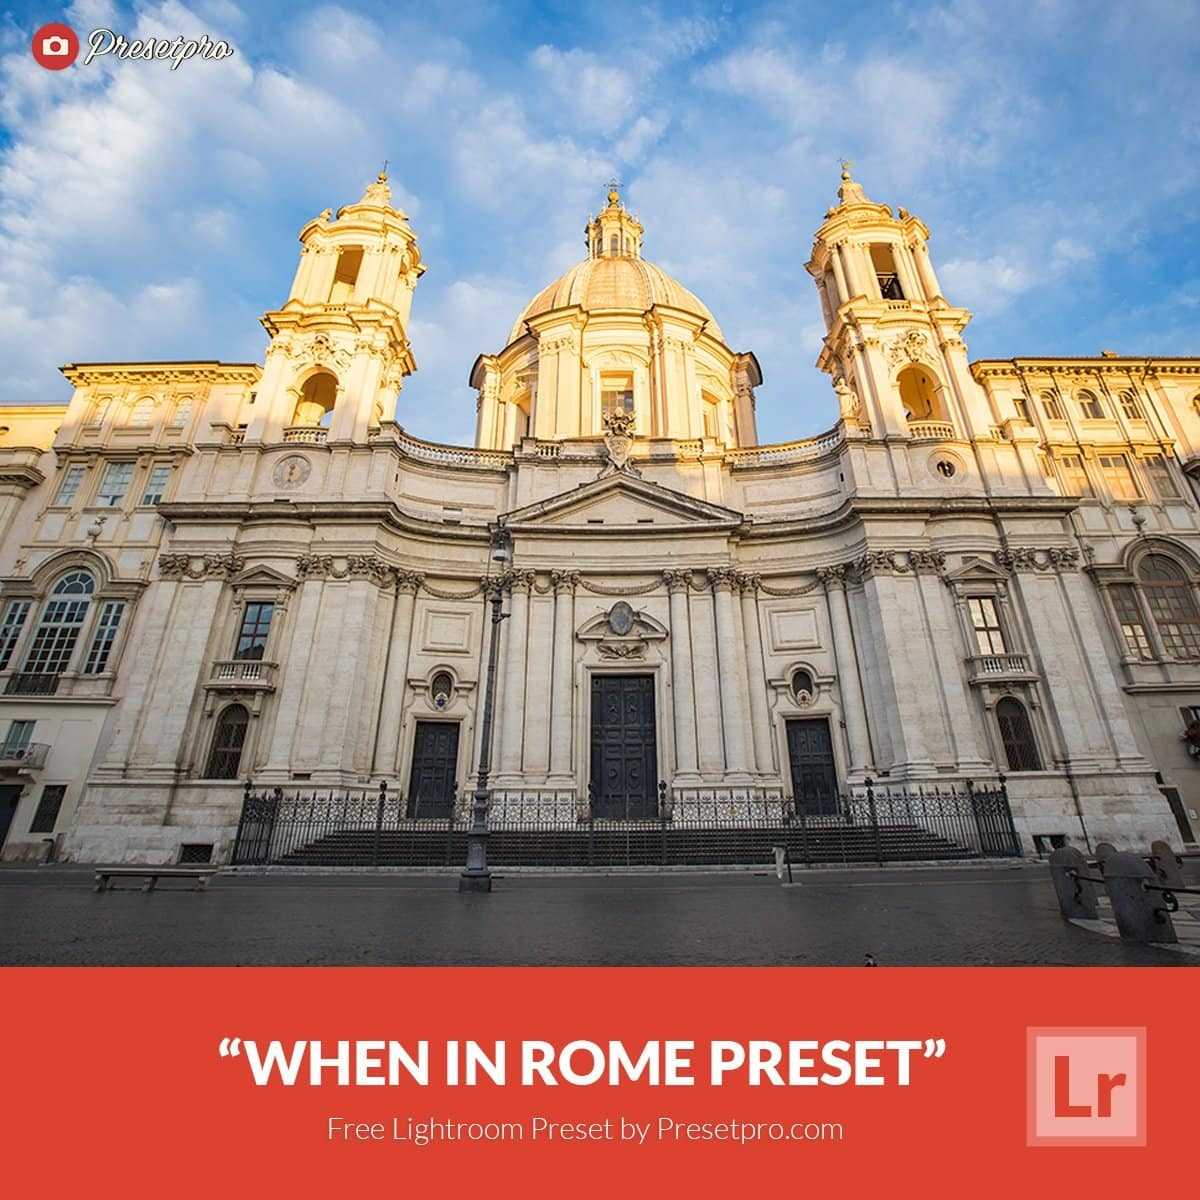 Free-Lightroom-Preset-When-In-Rome